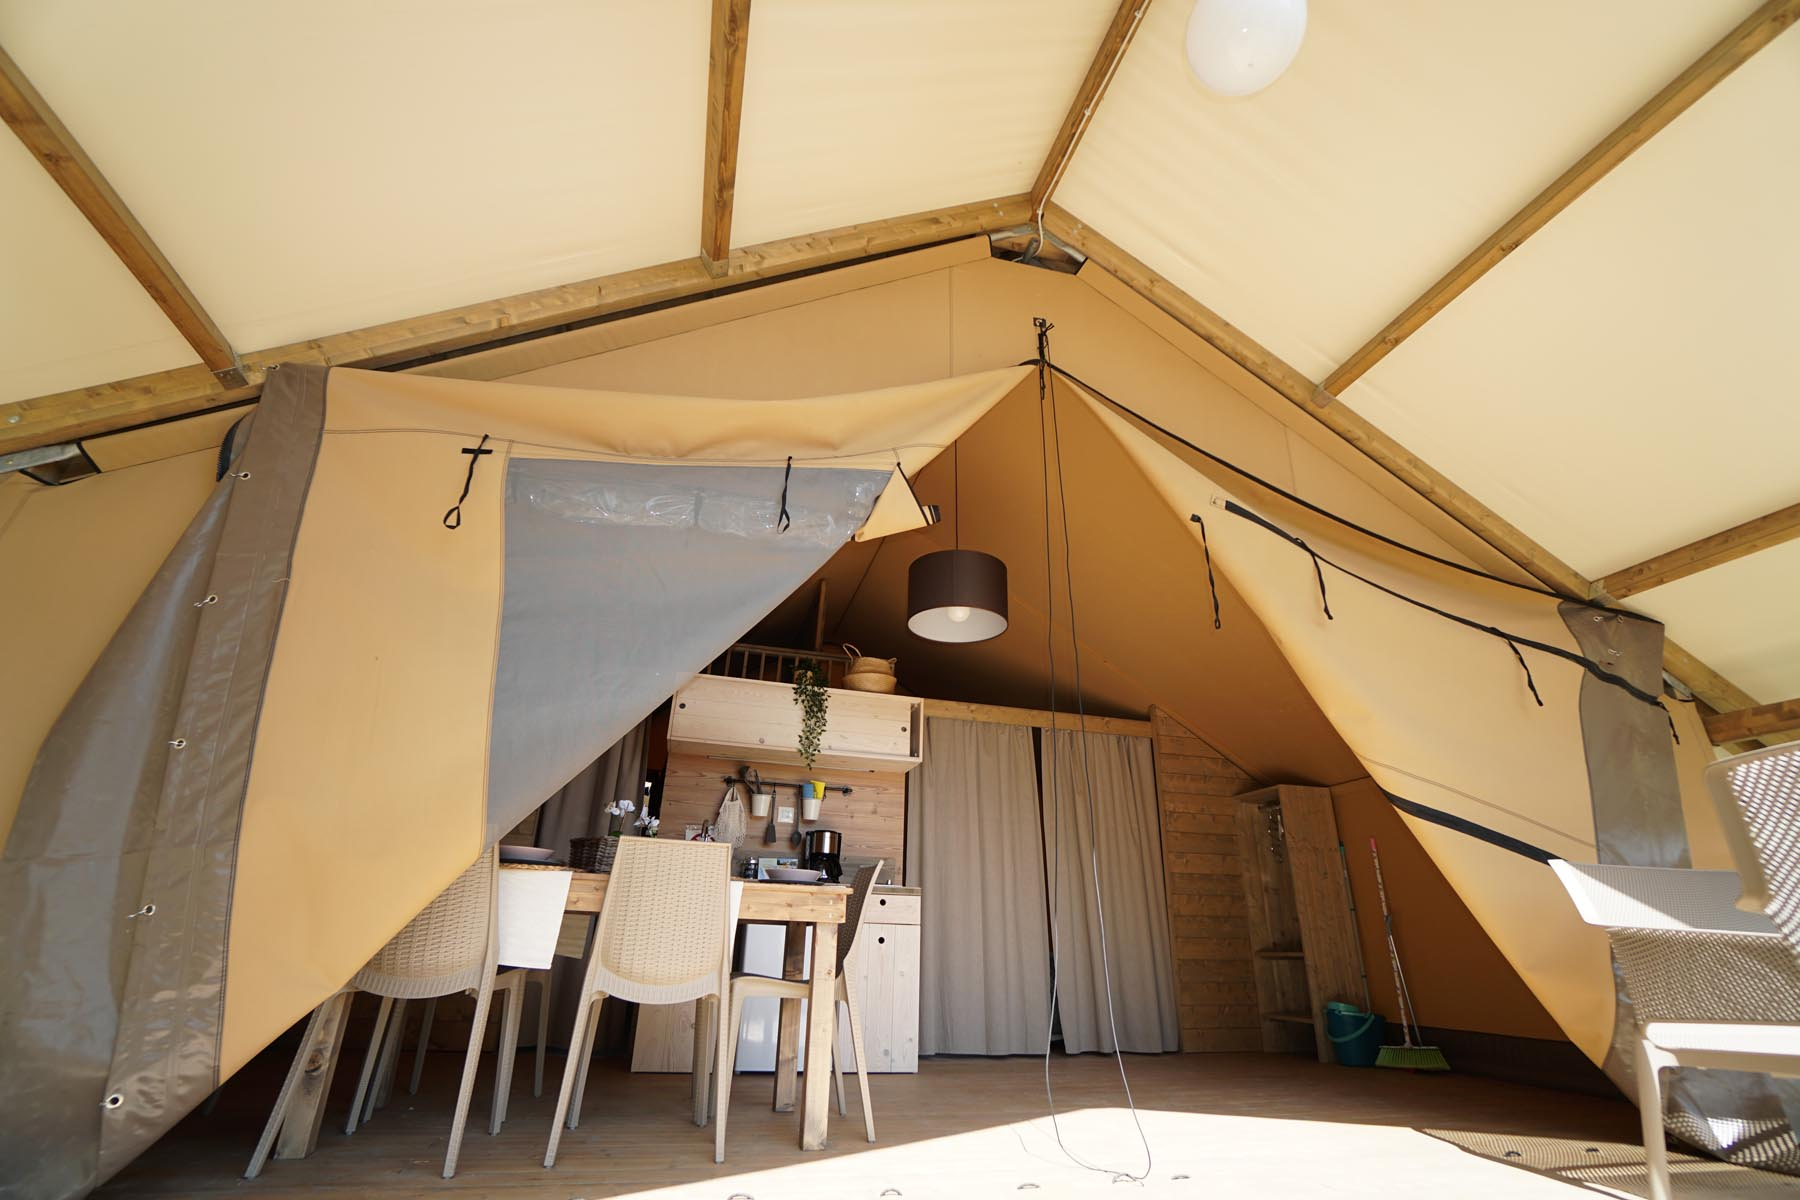 Glamping Tuscany - Tenda Lodge Safari